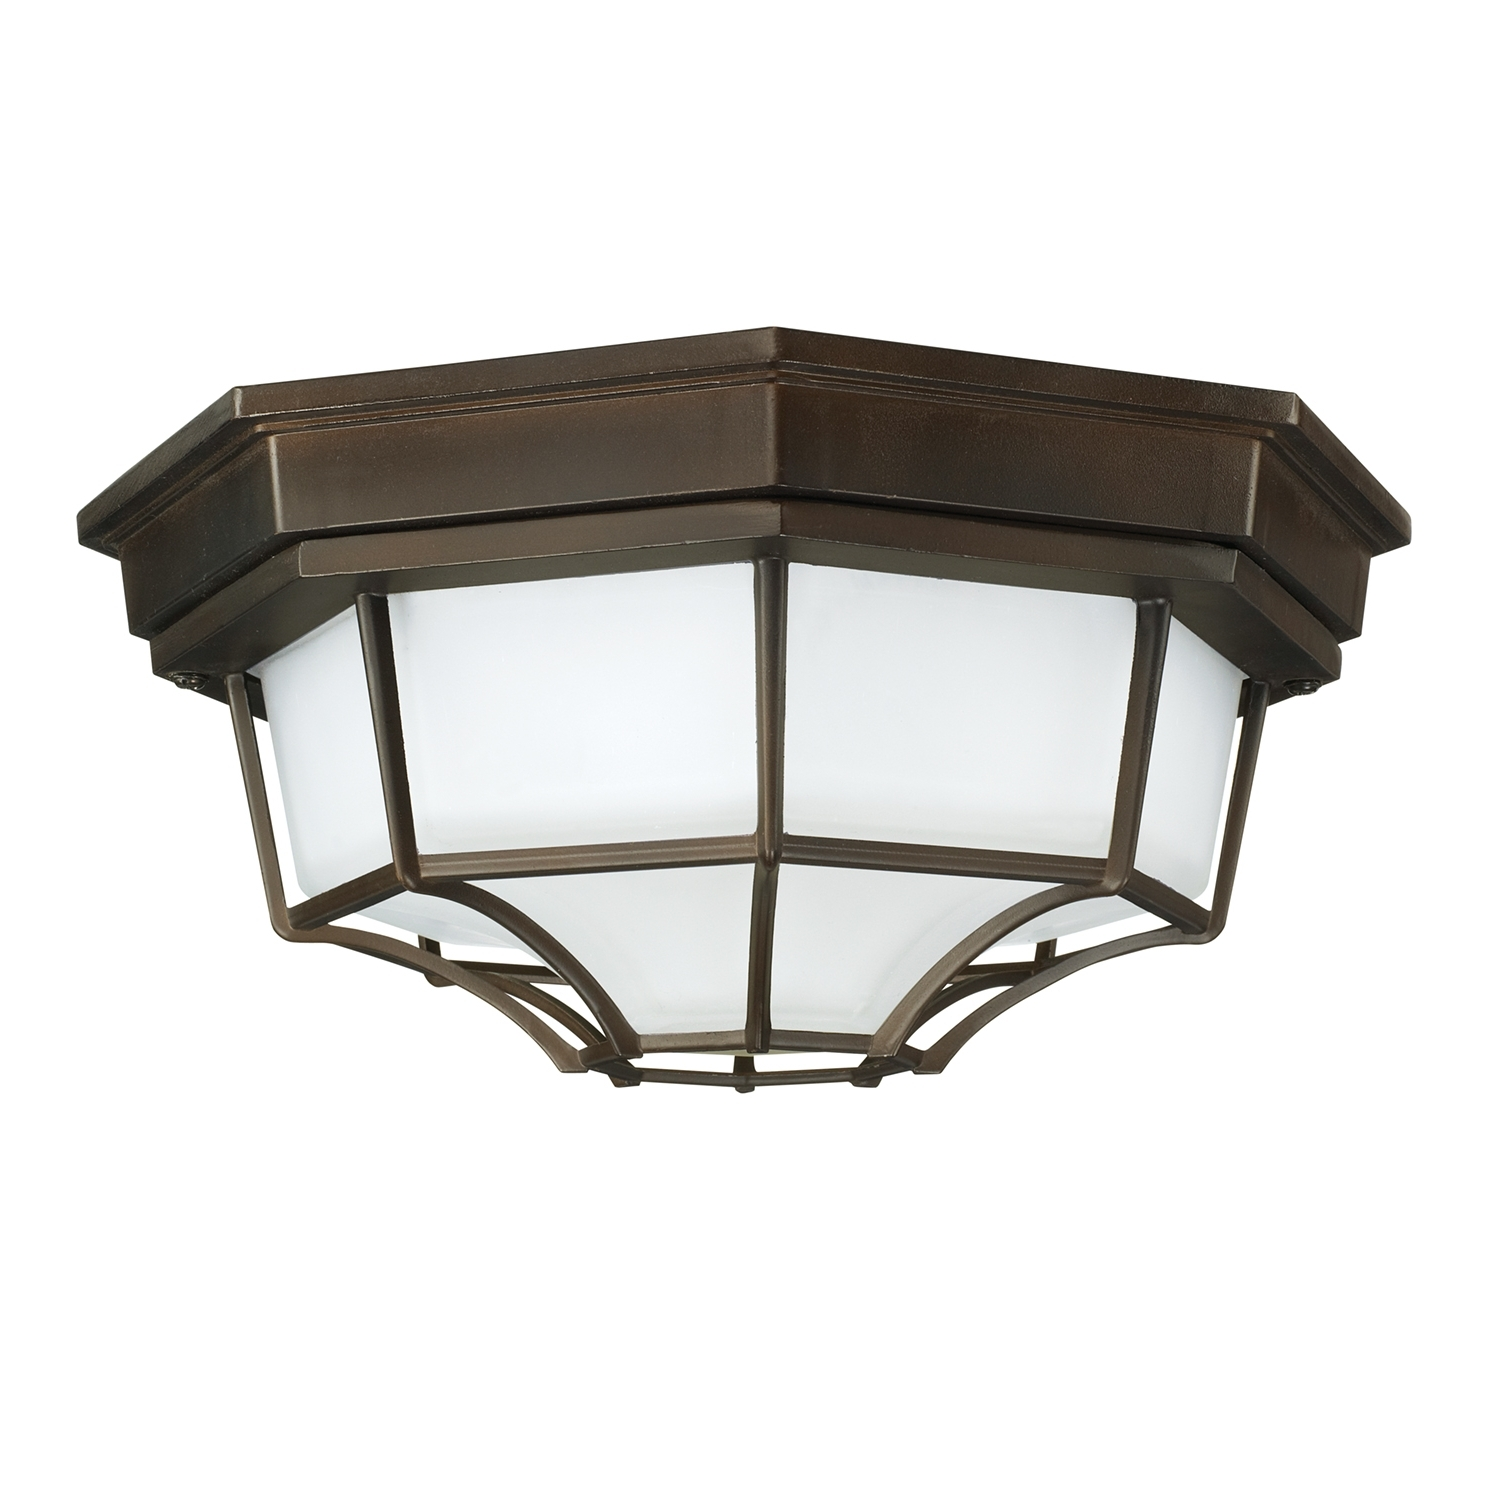 Capital Lighting Throughout Trendy Dusk To Dawn Outdoor Ceiling Lights (View 9 of 20)